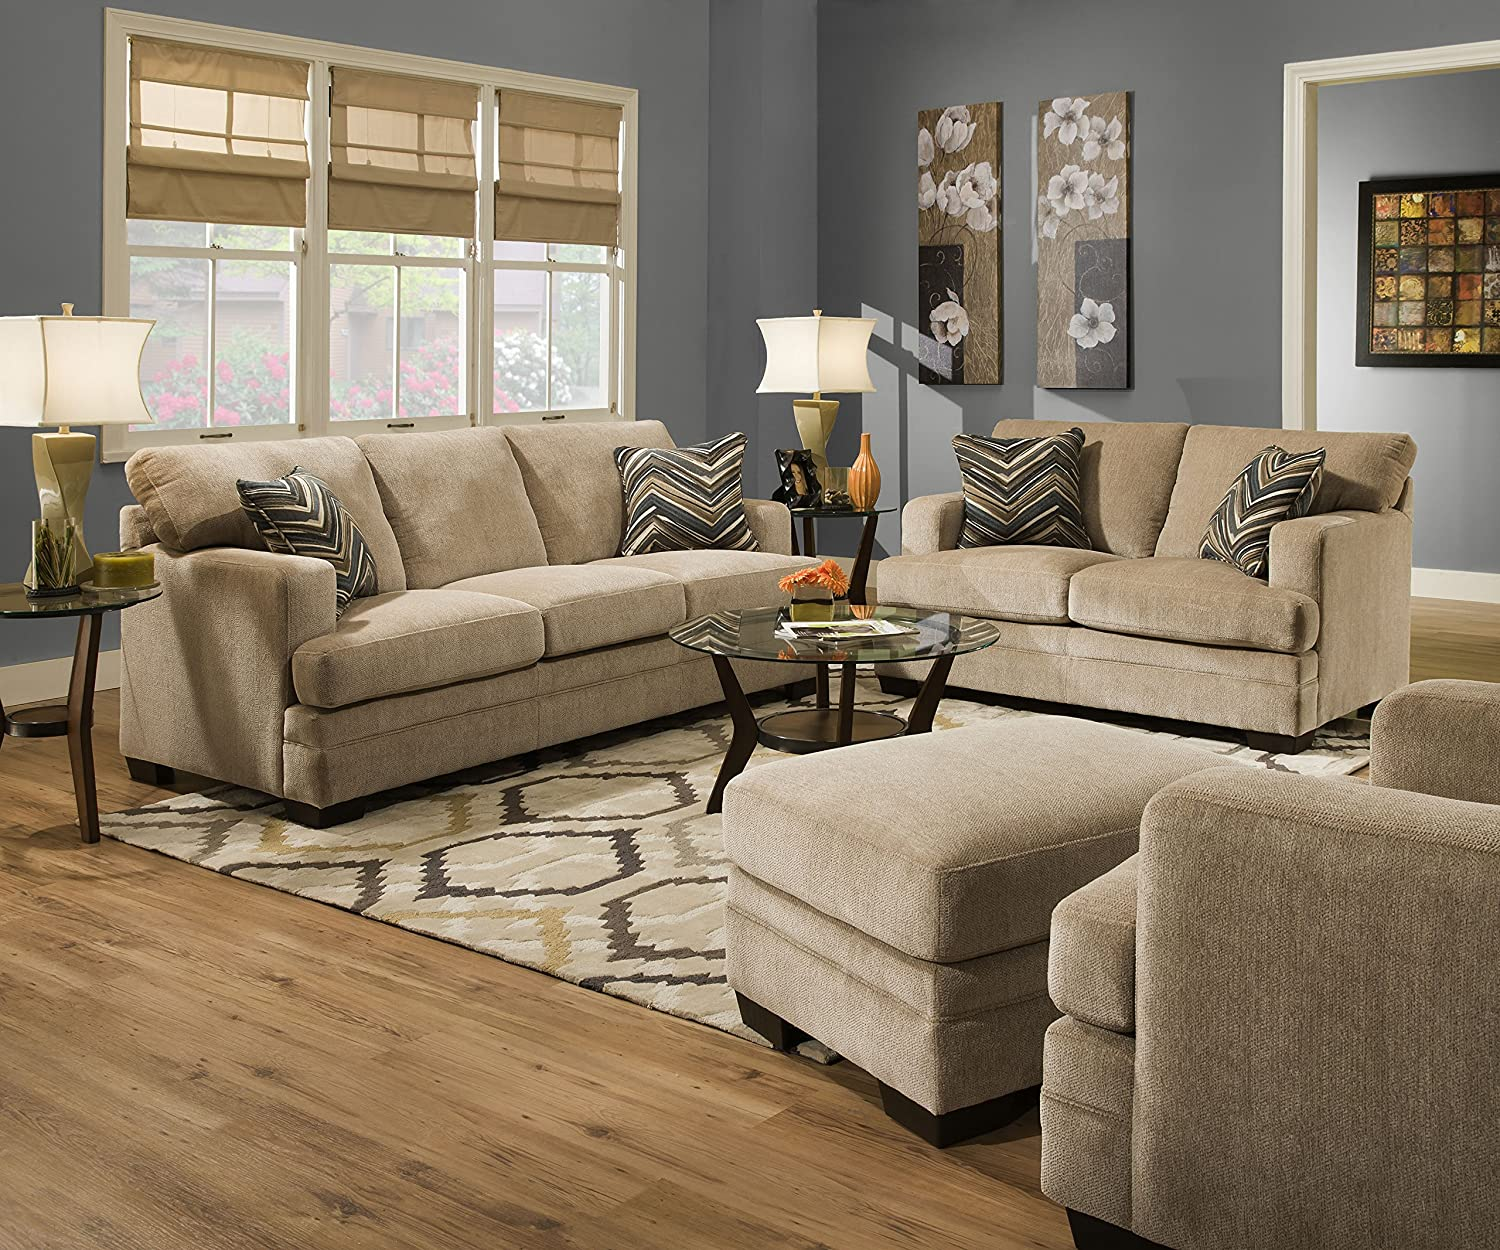 Simmons Living Room Set.  Amazon com Simmons Upholstery Sassy Barley Sofa Kitchen Dining